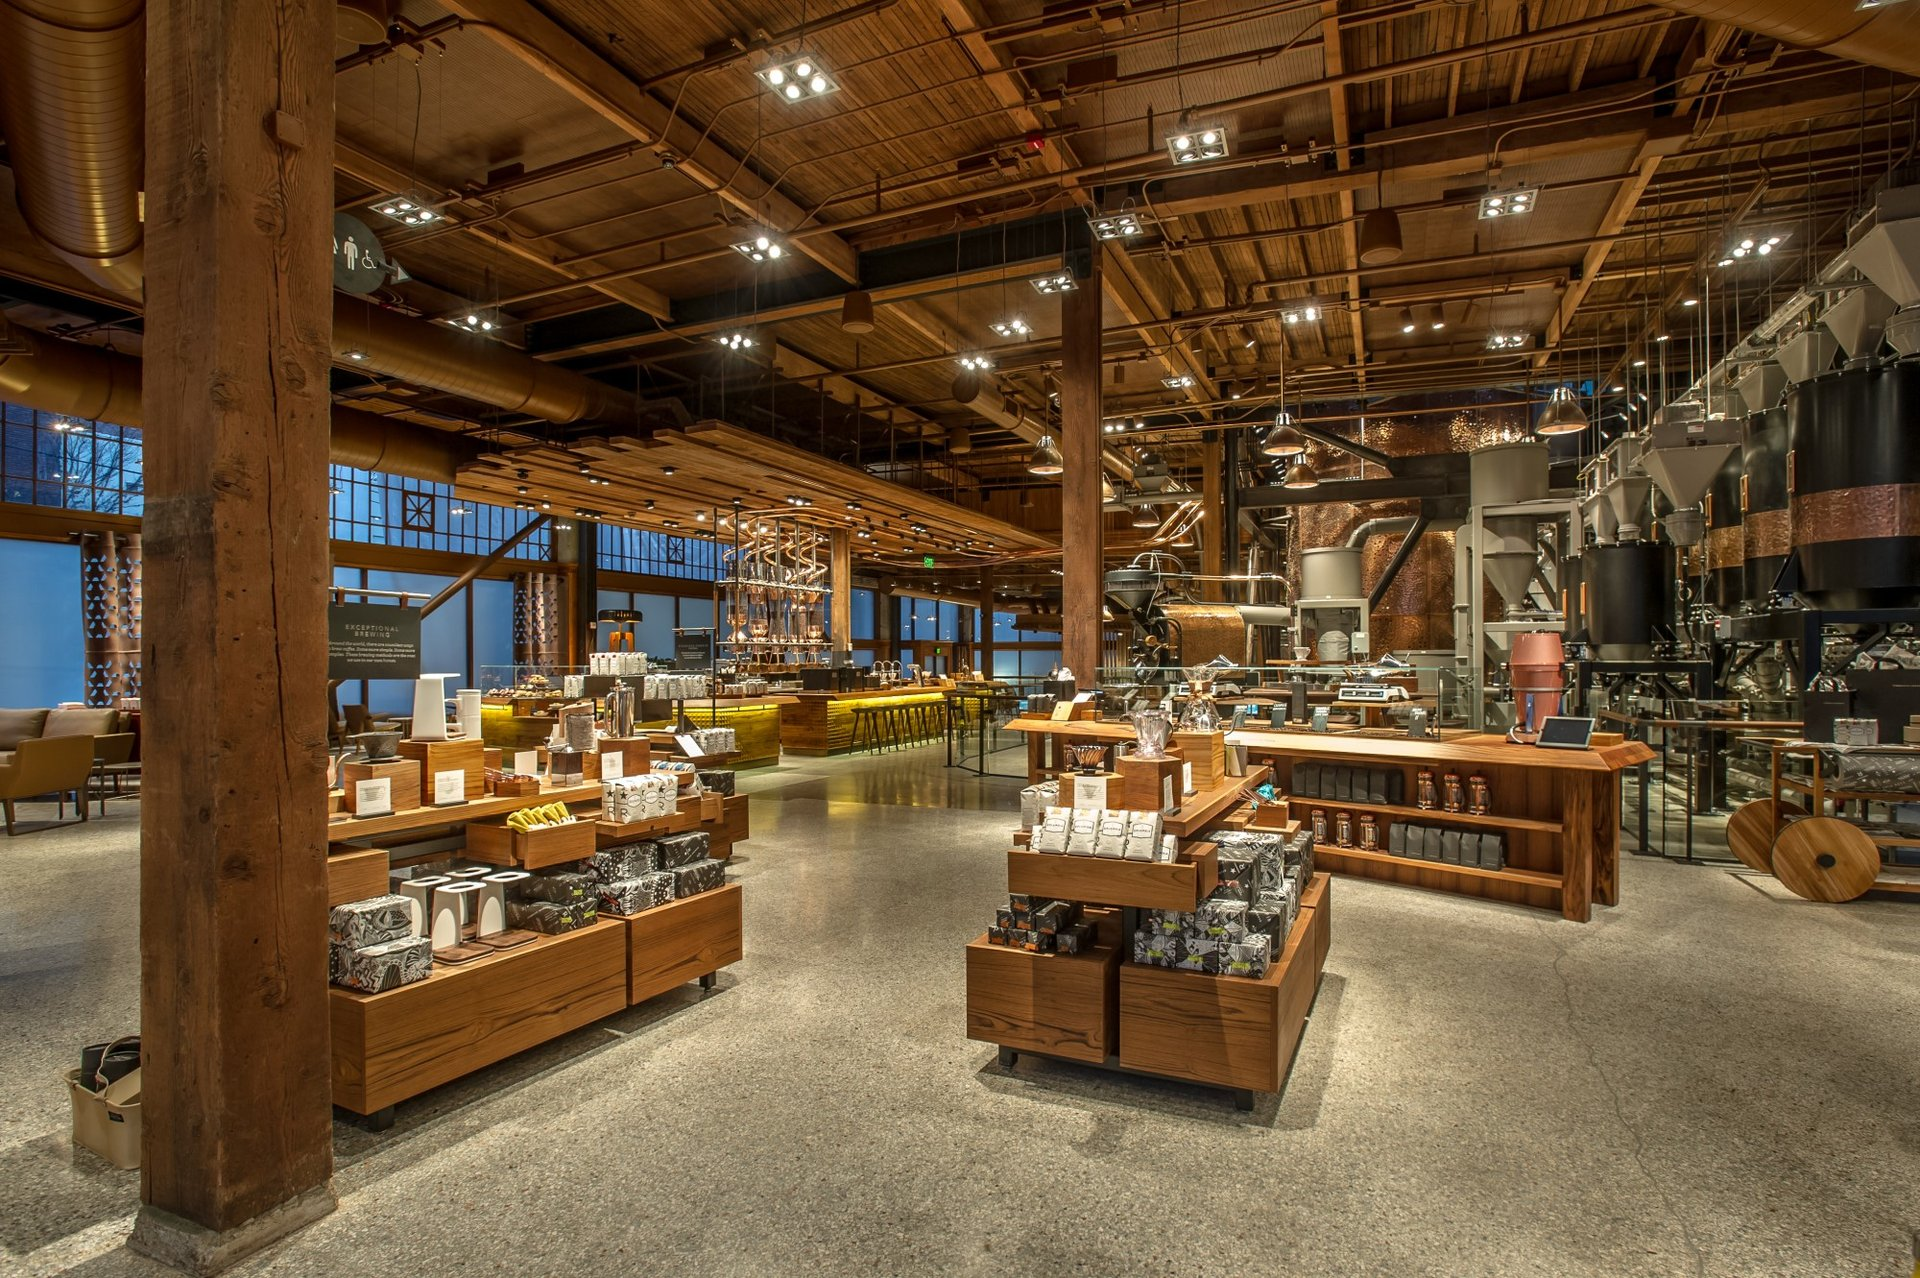 Starbucks Reserve Roastery & Tasting Room Things to do in Seattle